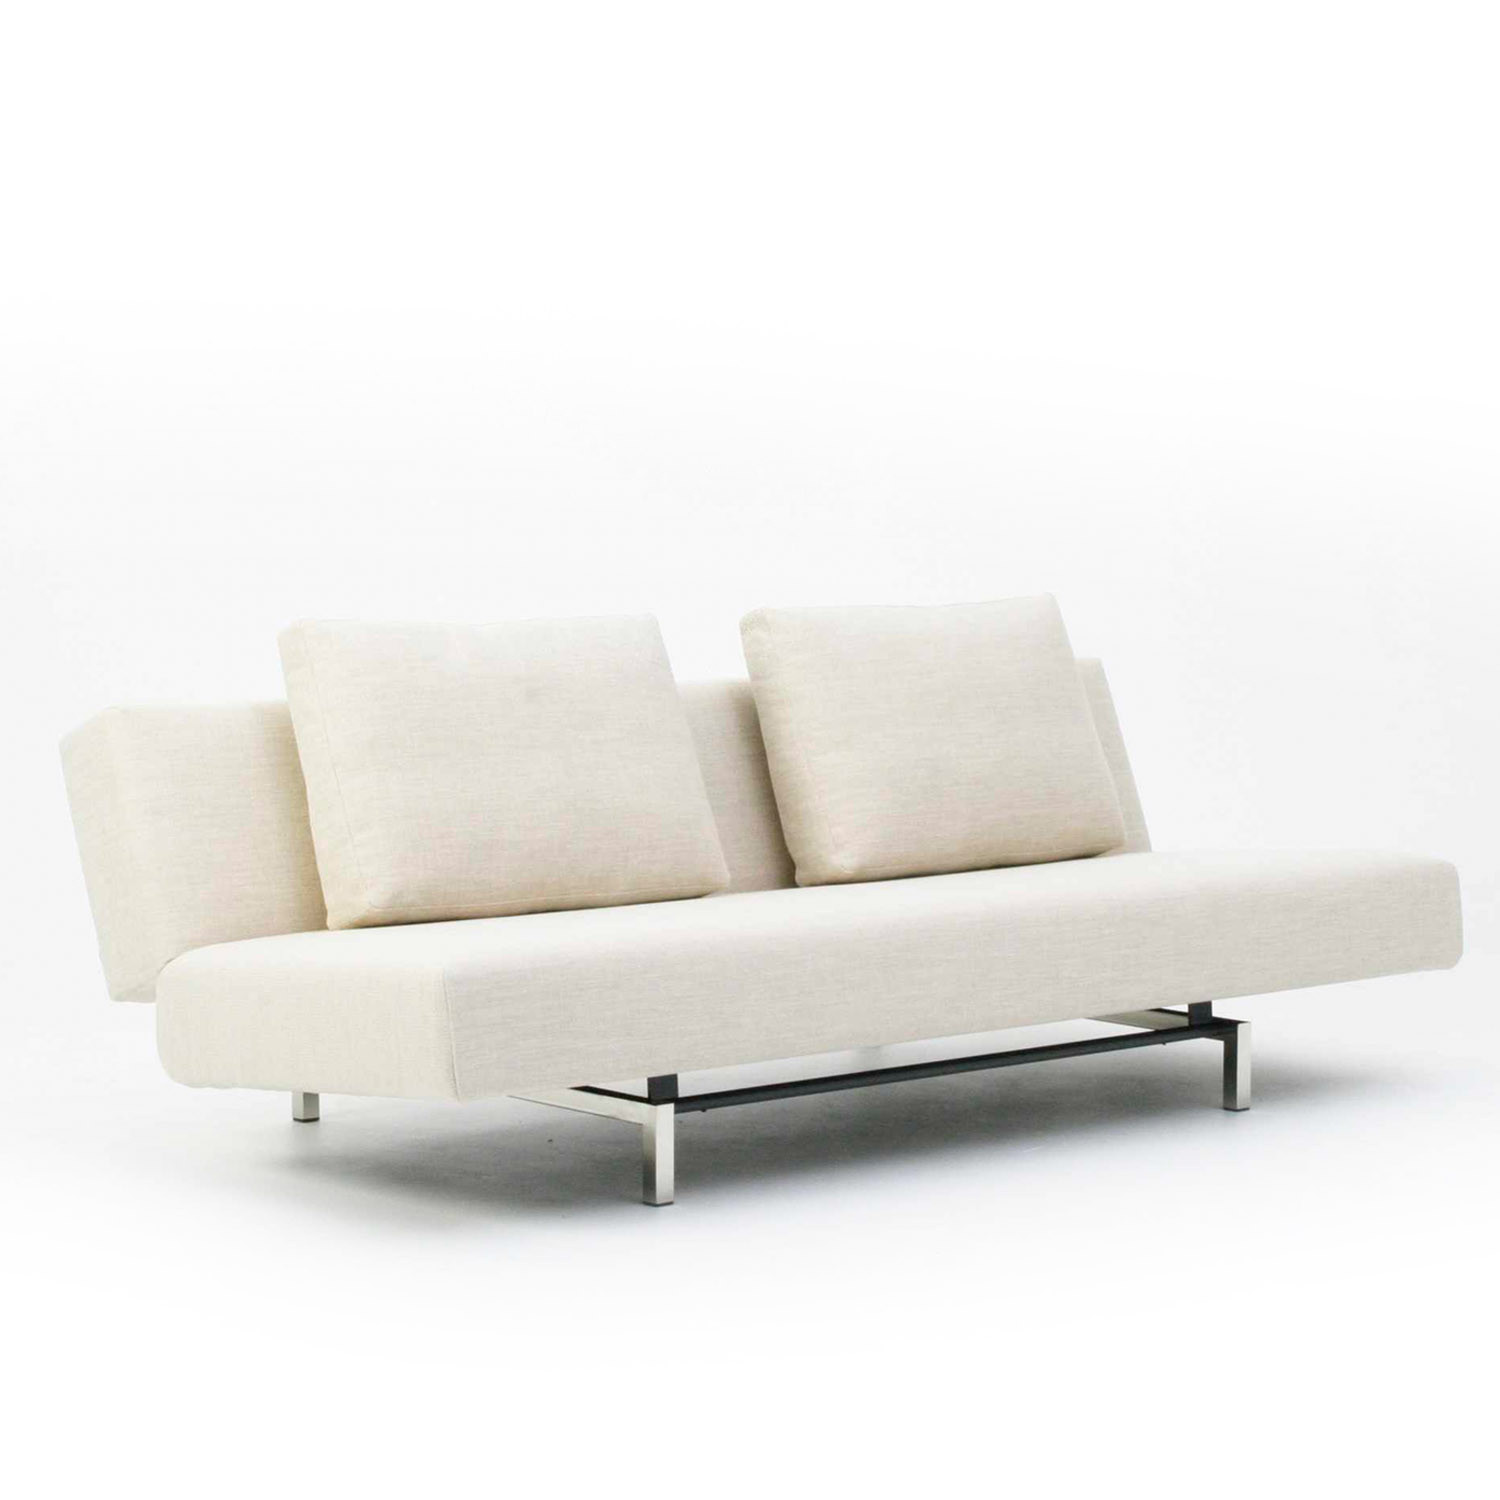 Sleeper Sofa Bed Modern Modular Sofas & Chaise